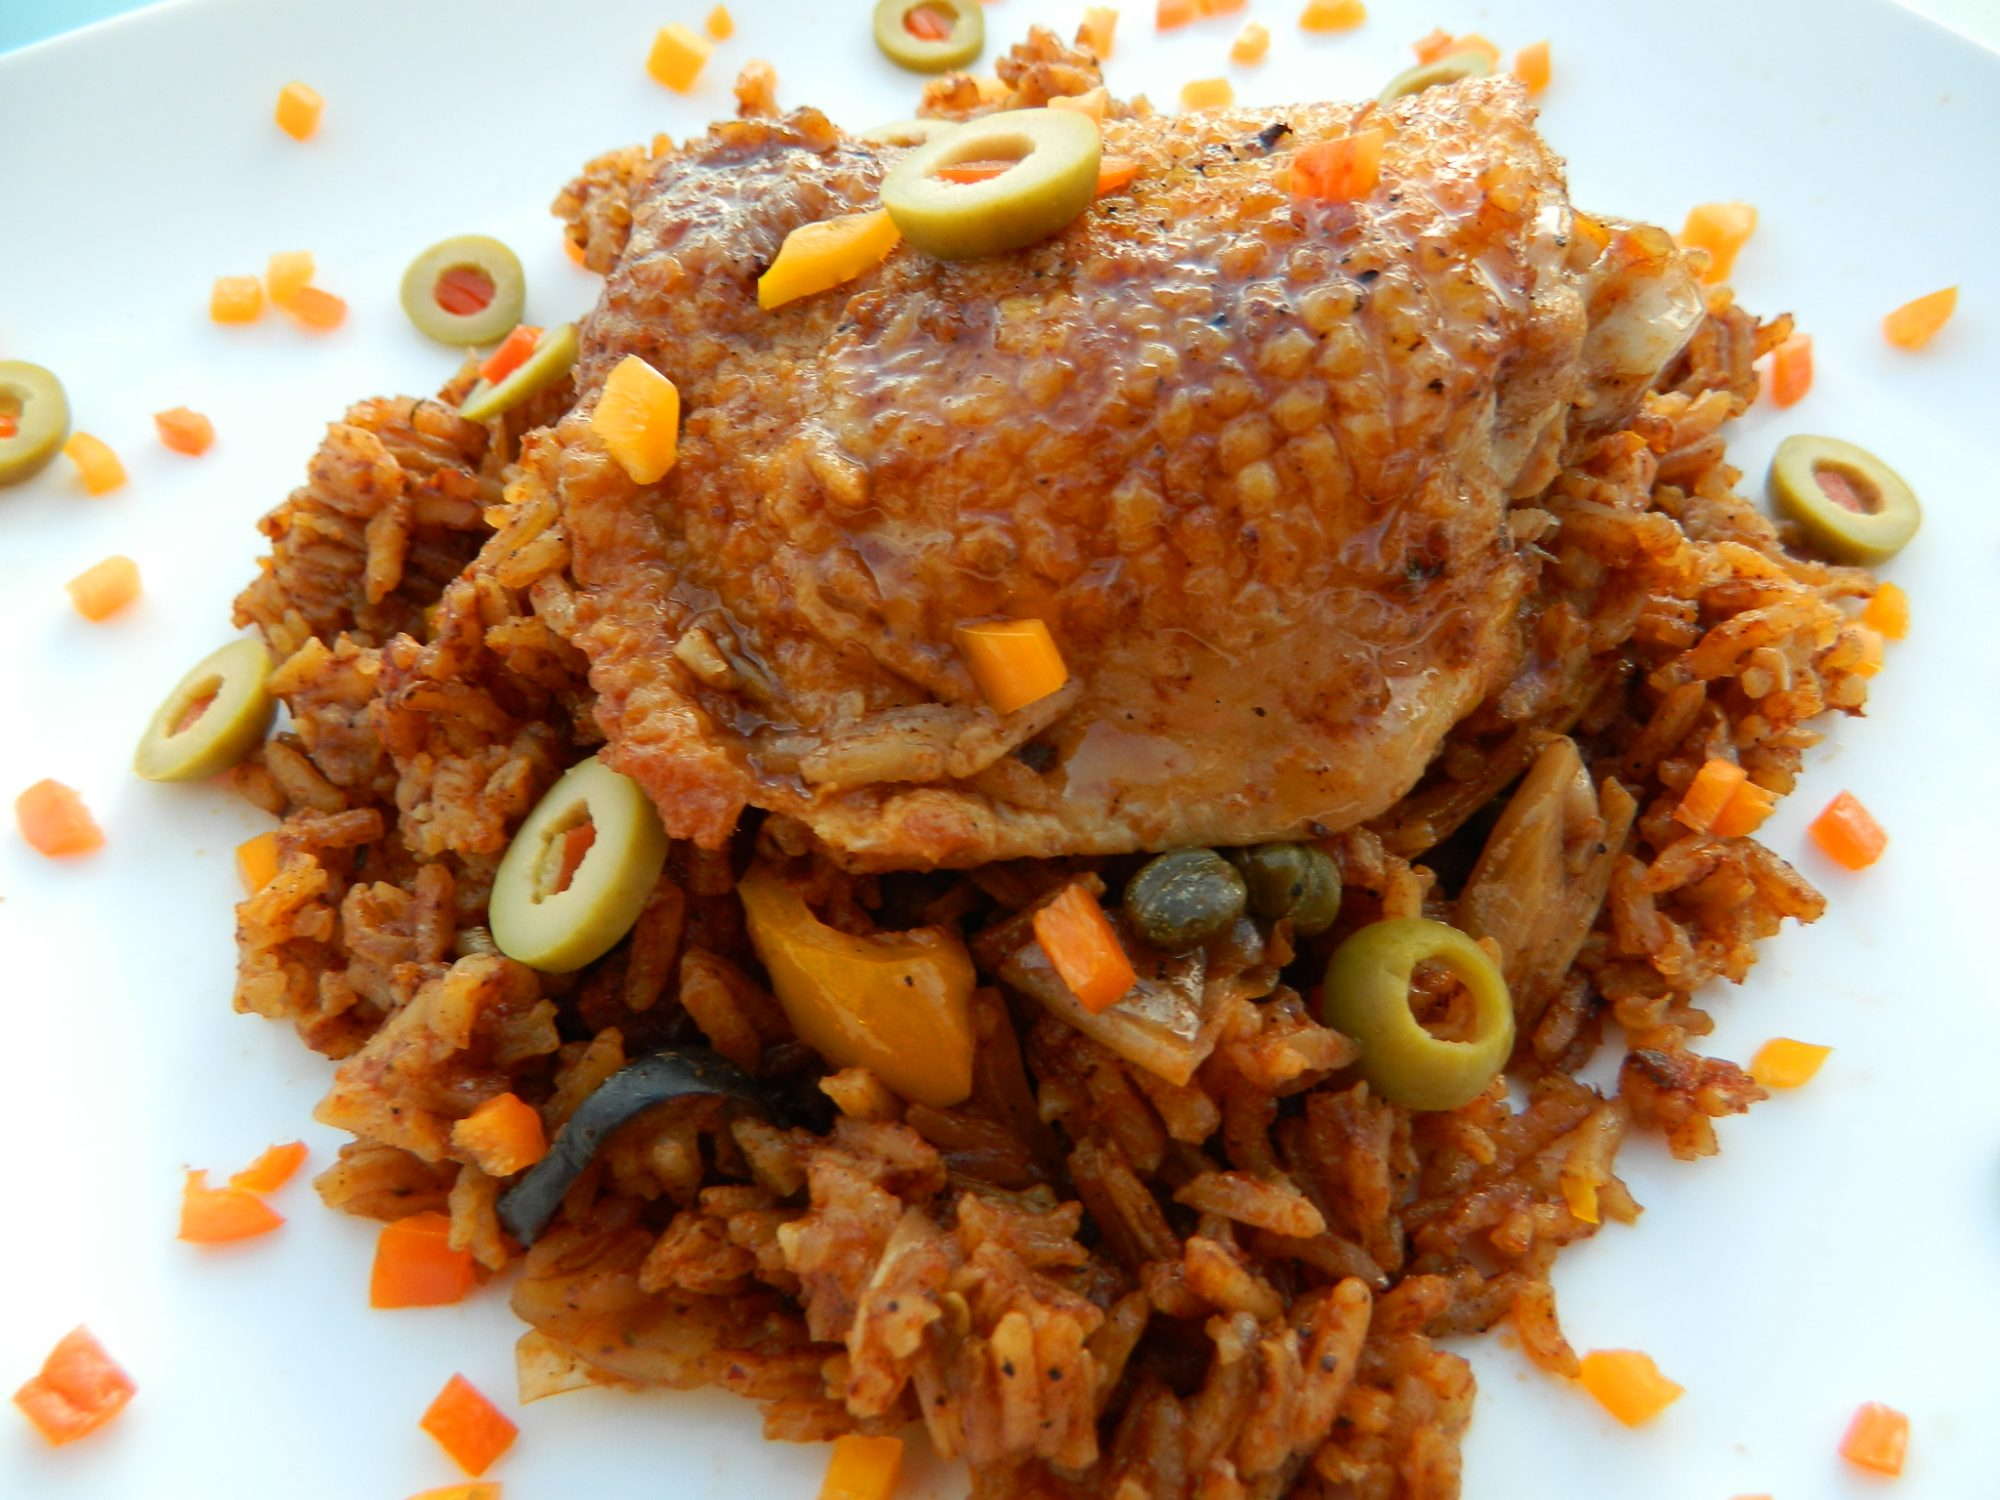 1578067-Chef-Johns-Chicken-and-Rice-photo-by-mauigirl.jpg